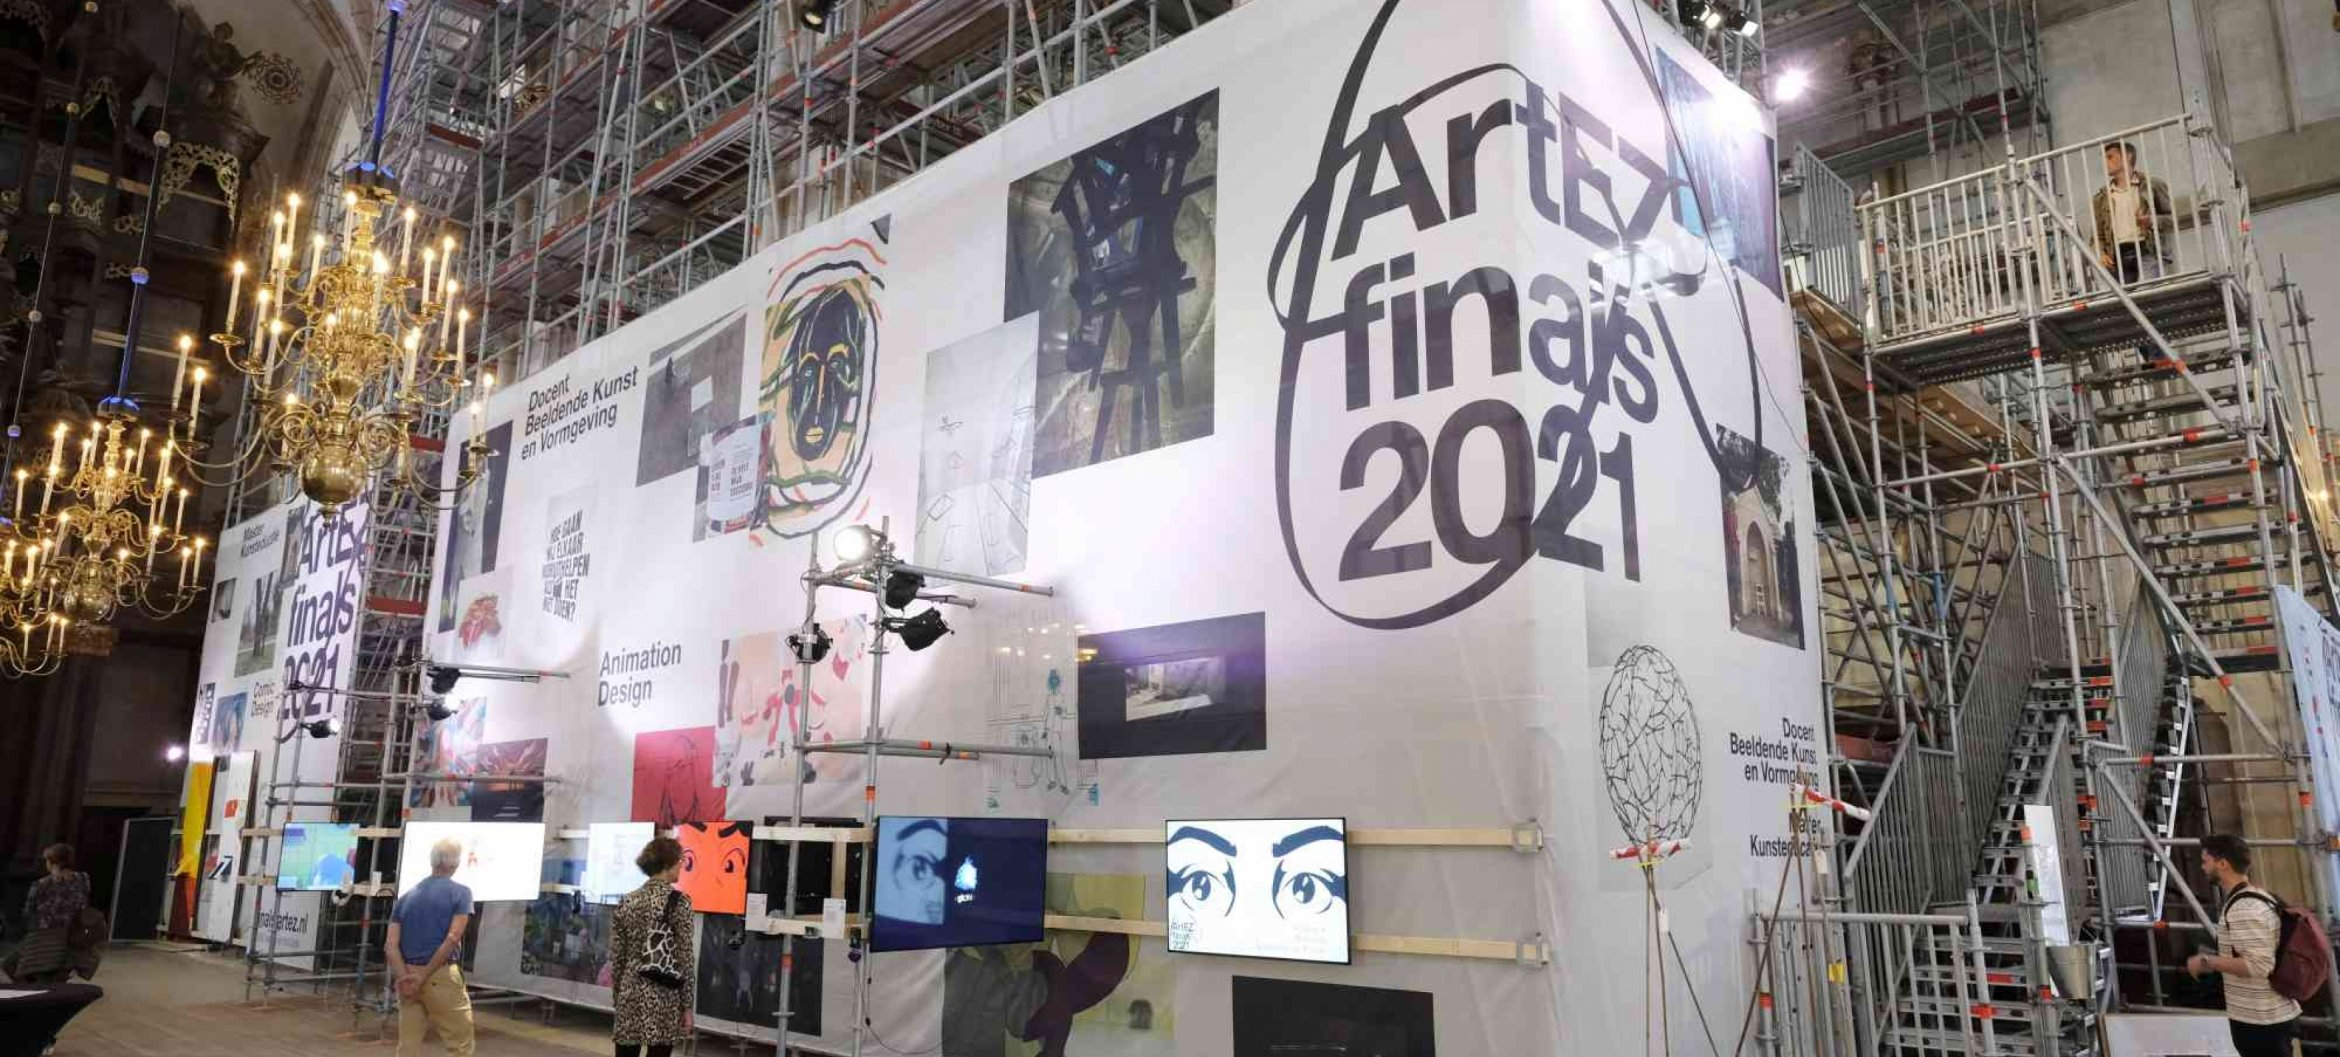 Experience the finals exhibition Art & Design in Grote Kerk, Zwolle